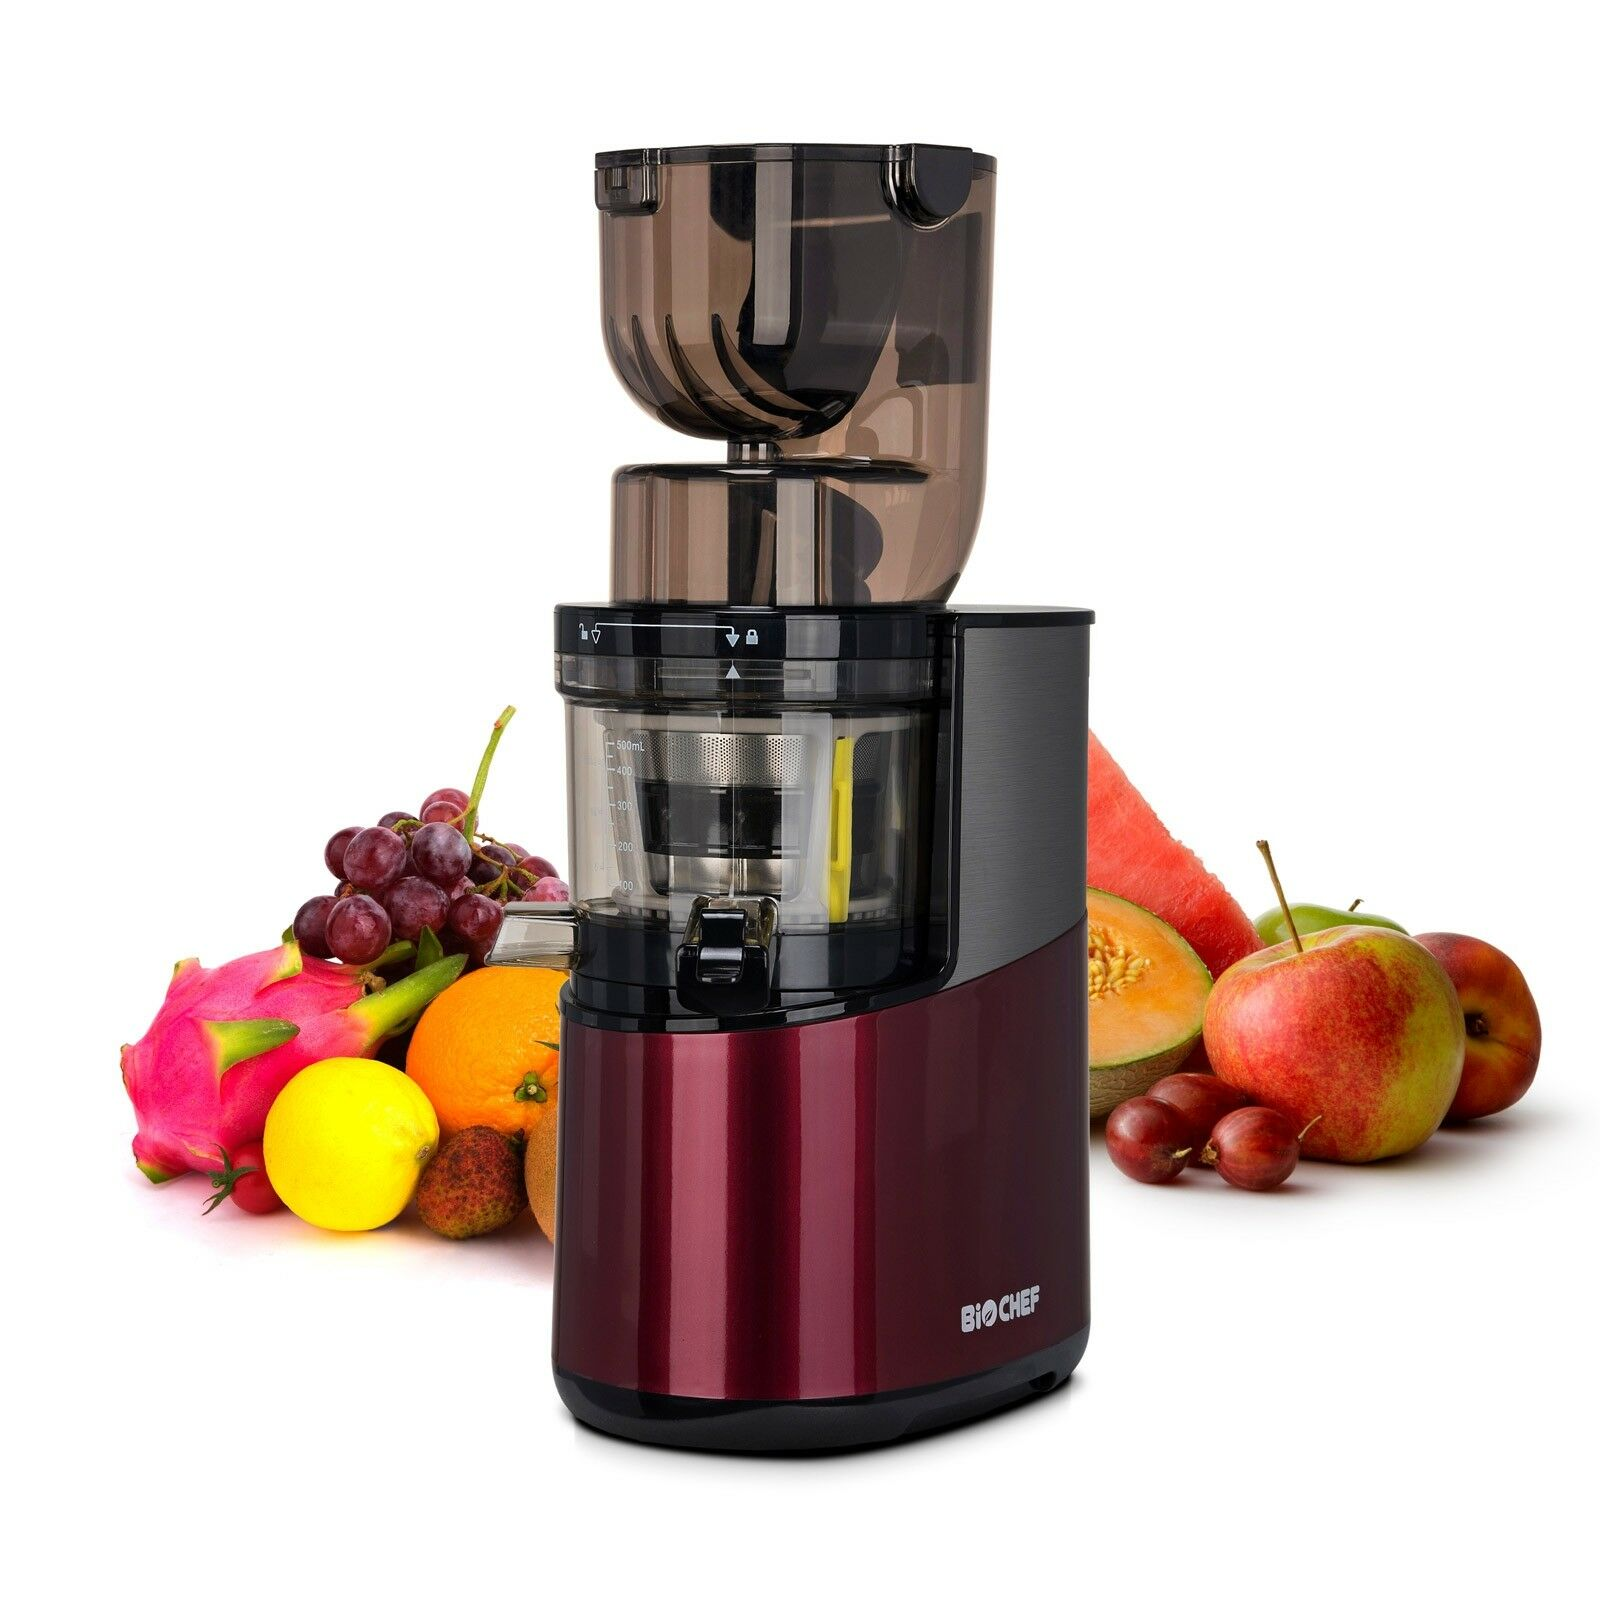 Biochef Slow Juicer Big W : BIOCHEF 400W Slow / Masticating WHOLE Juicer - Red - ?360.00 PicClick UK